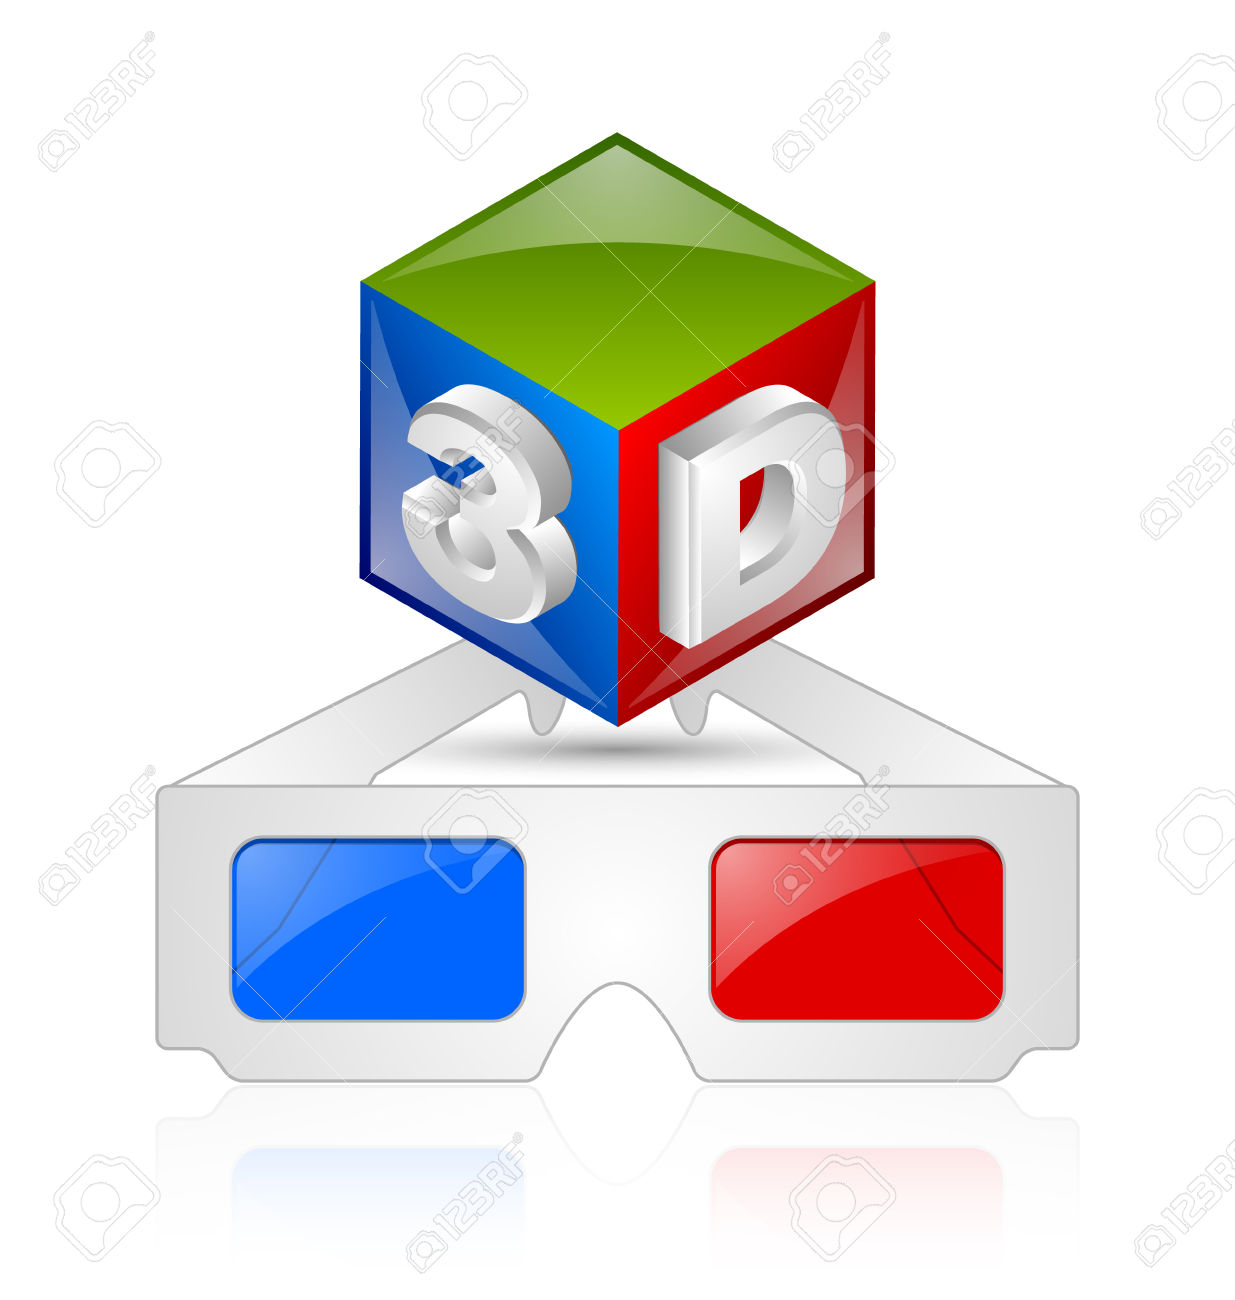 Anaglyphic 3D Red Blue Glasses And Cube On White Background.